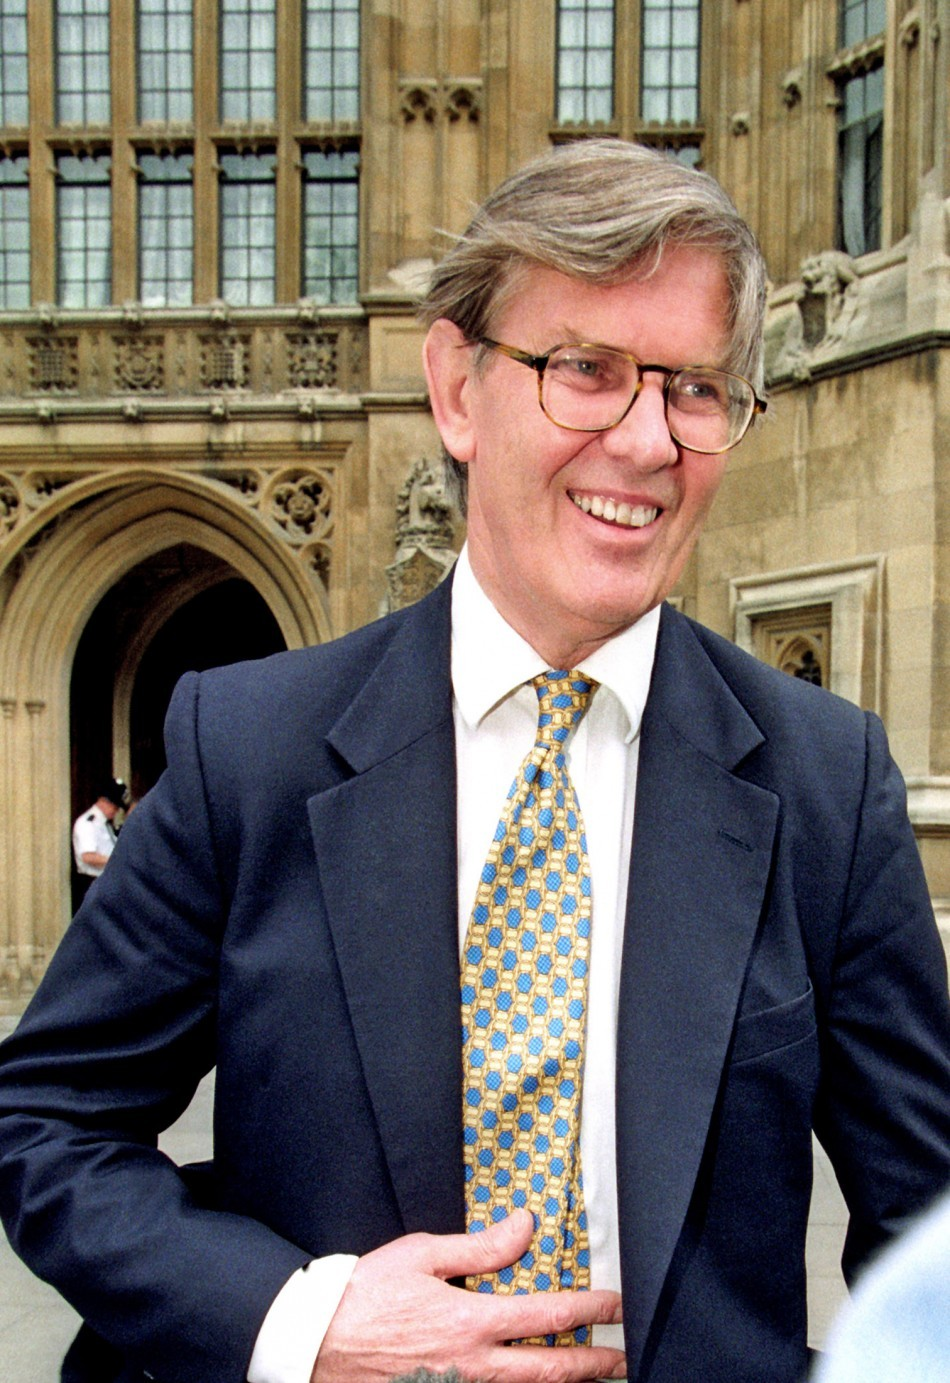 Tory Eurosceptic Bill Cash's diaries 'to reopen old wounds over EU'